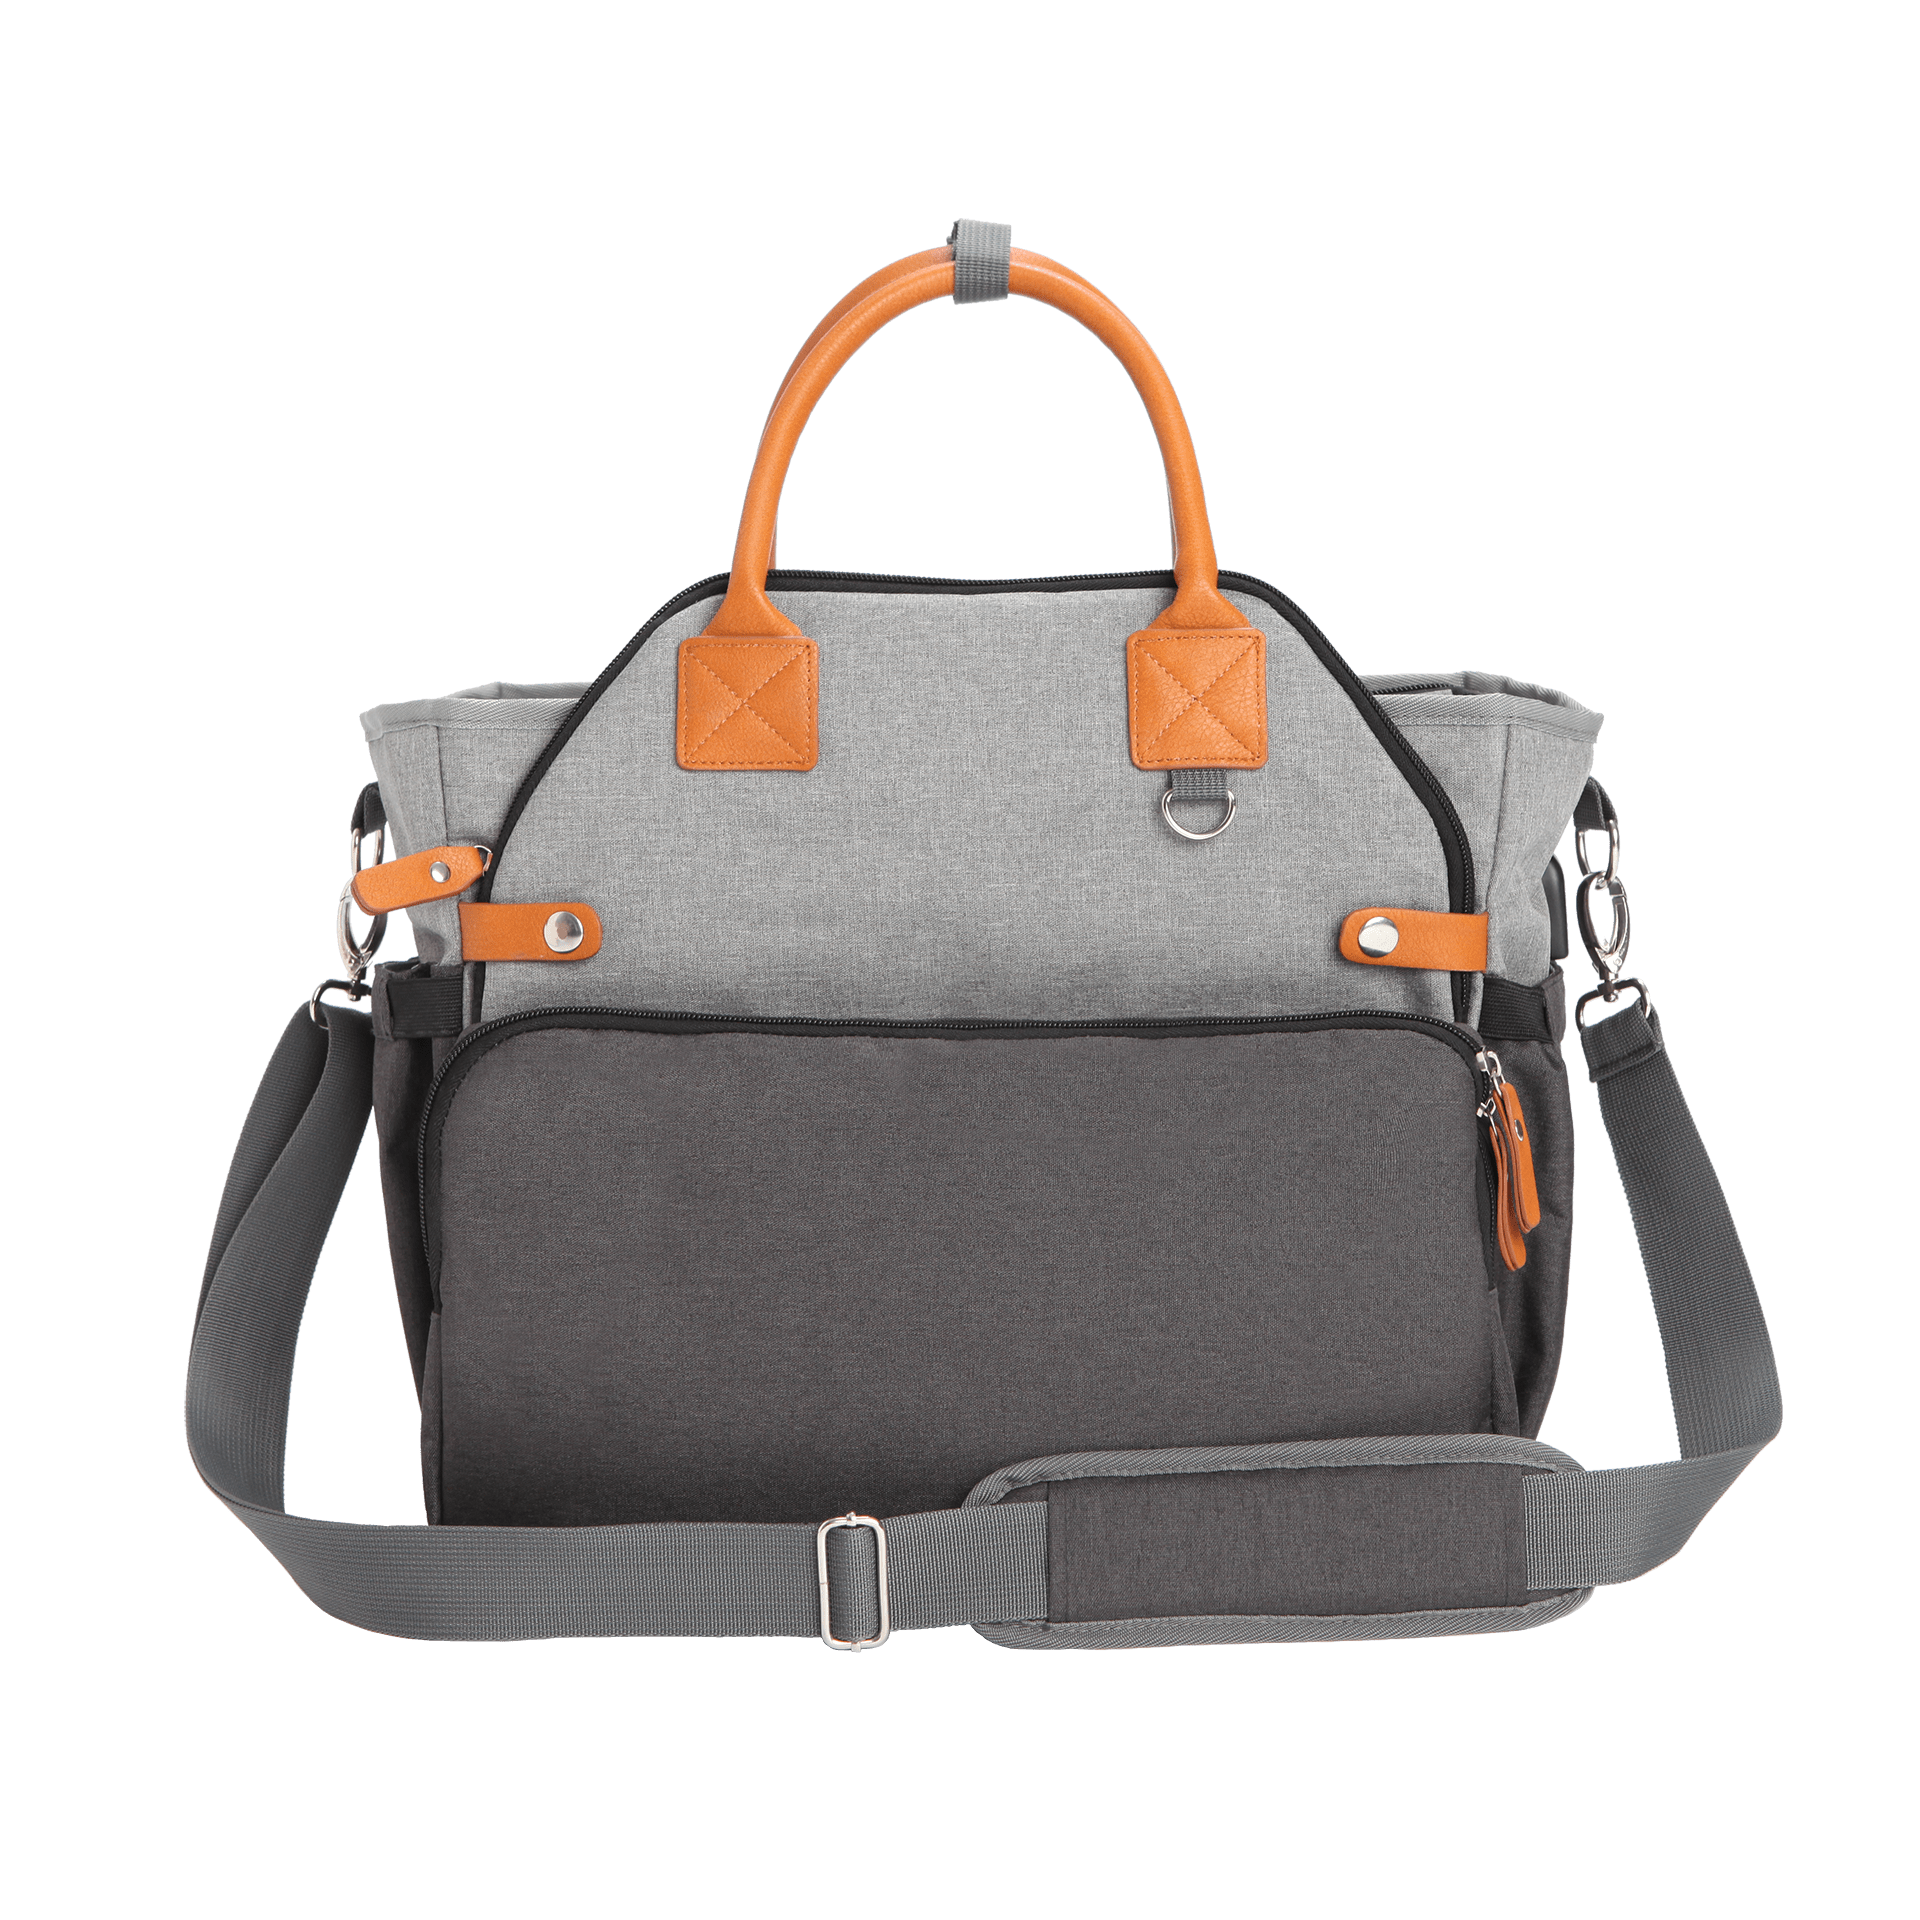 Hero product photo of a grey diaper bag with orange handles on a transparent background